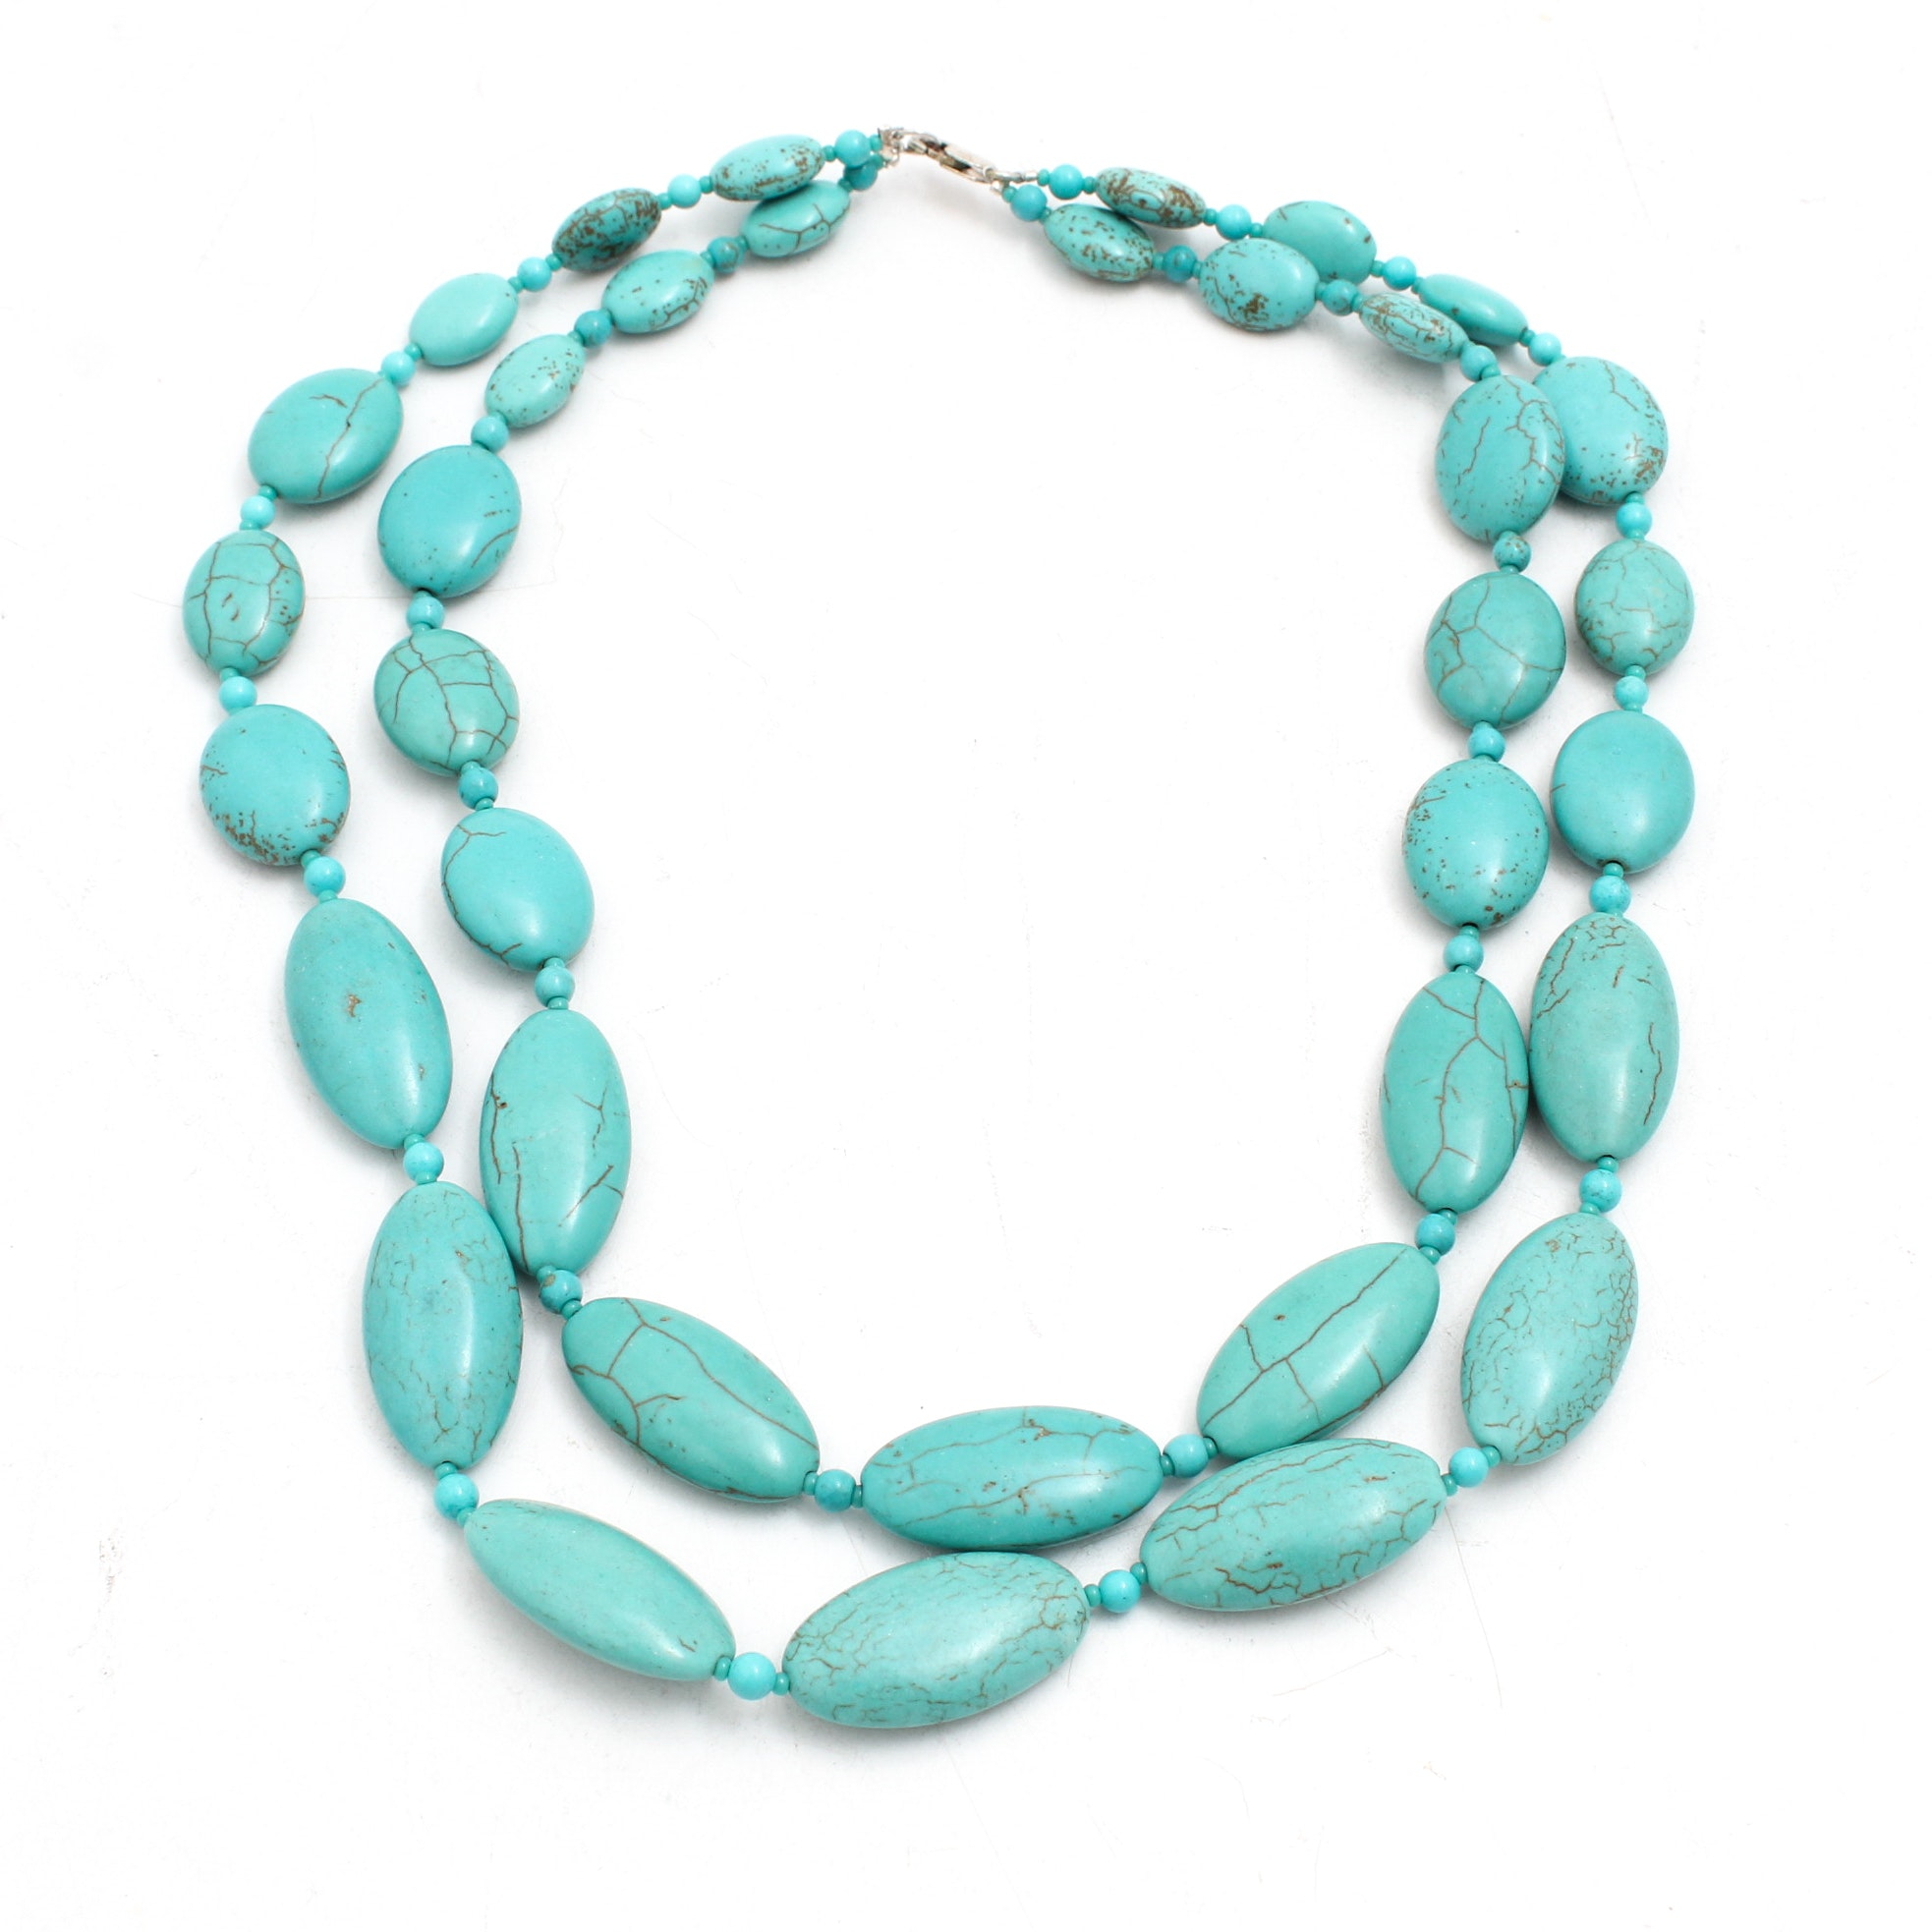 Imitation Turquoise Bead Necklace with Sterling Silver Findings